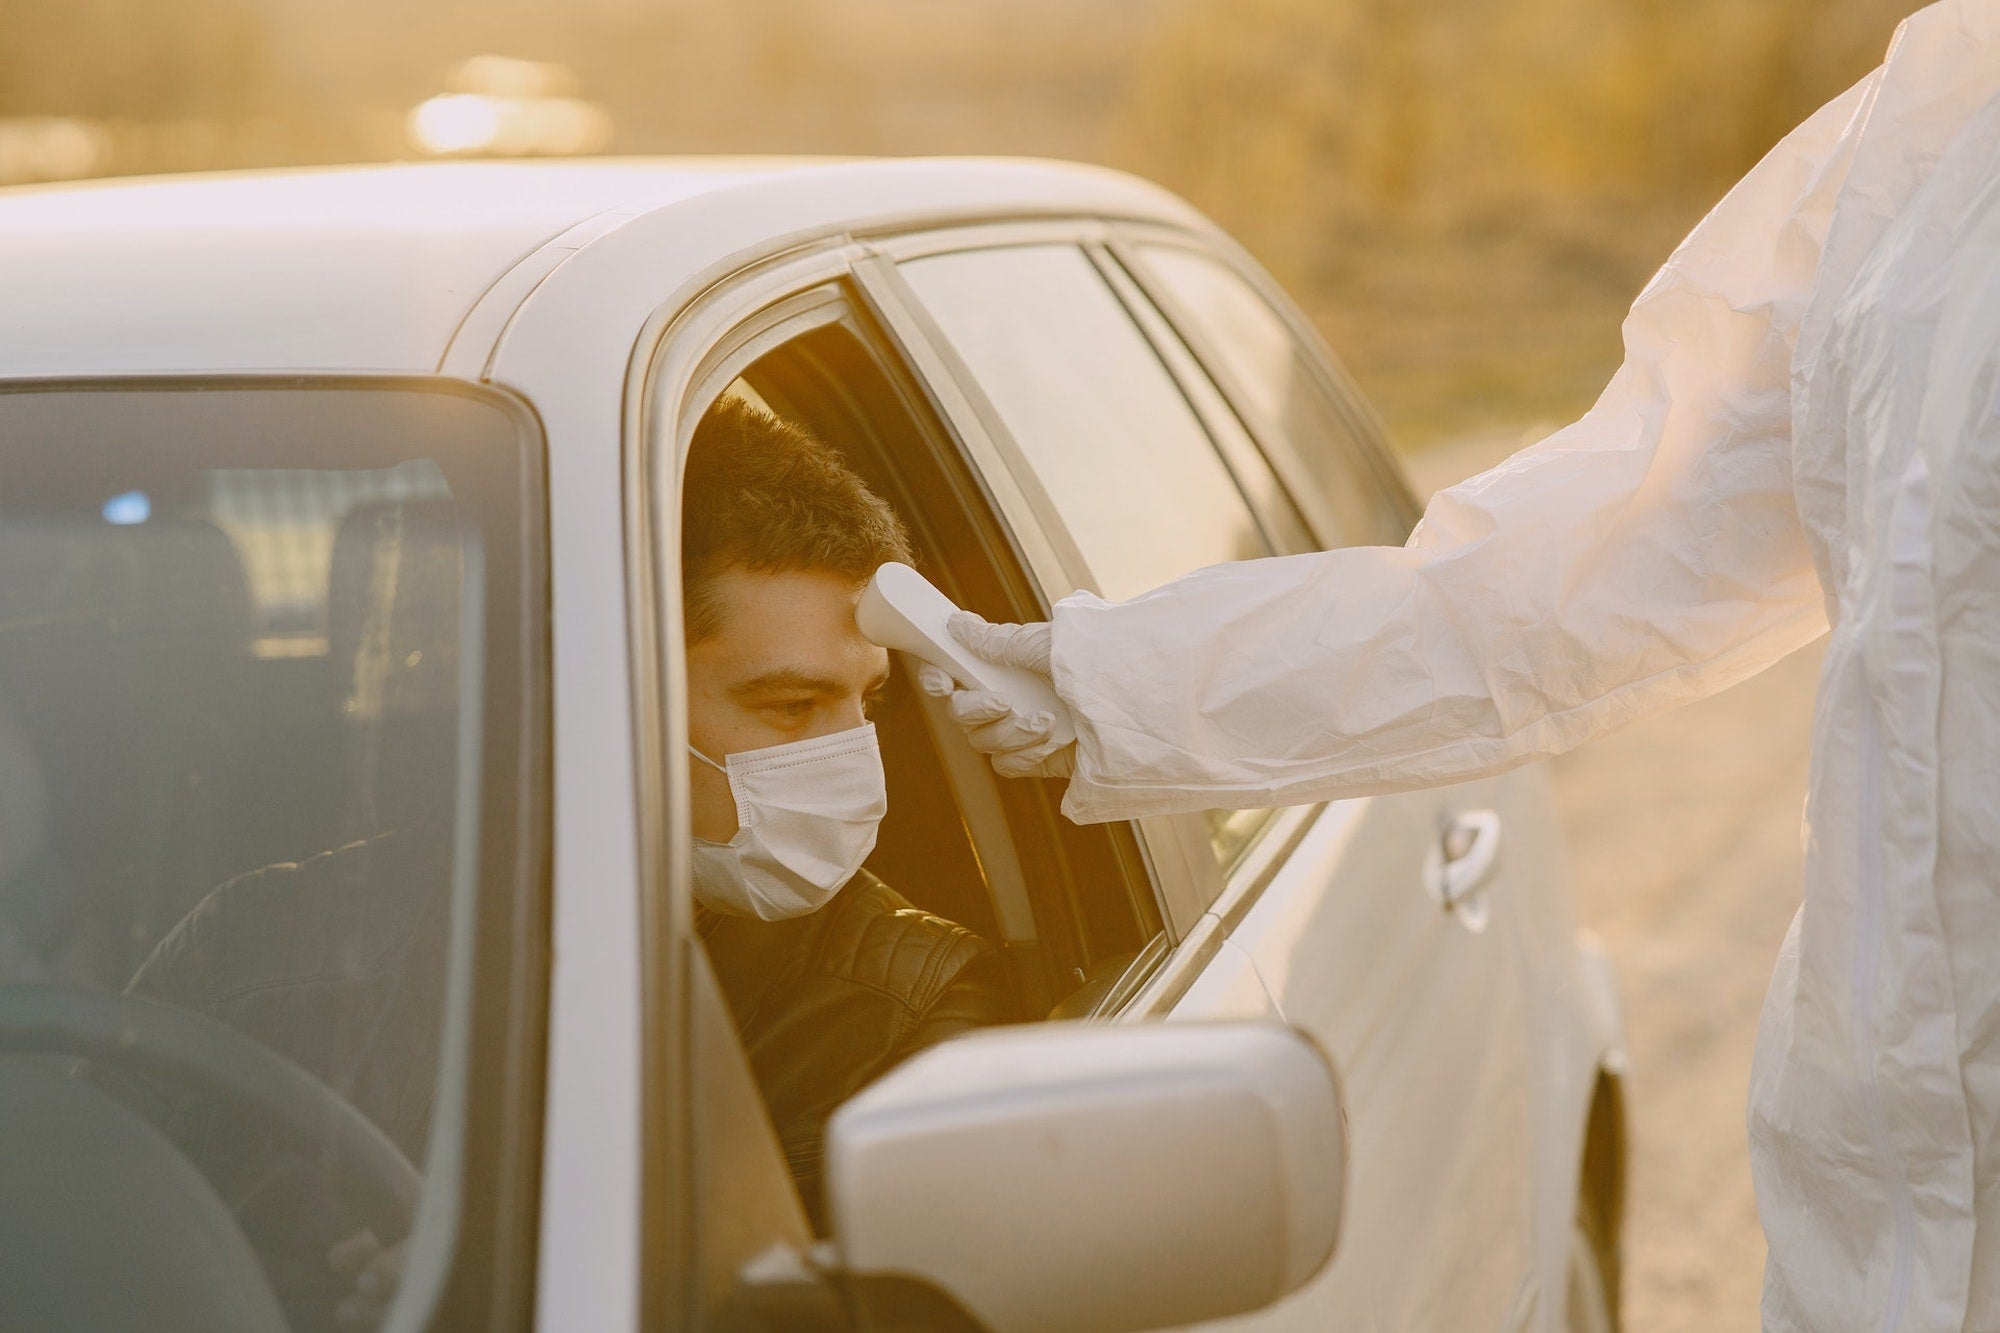 a man in a car wearing a mask is having his temperature taken by someone wearing protective gloves